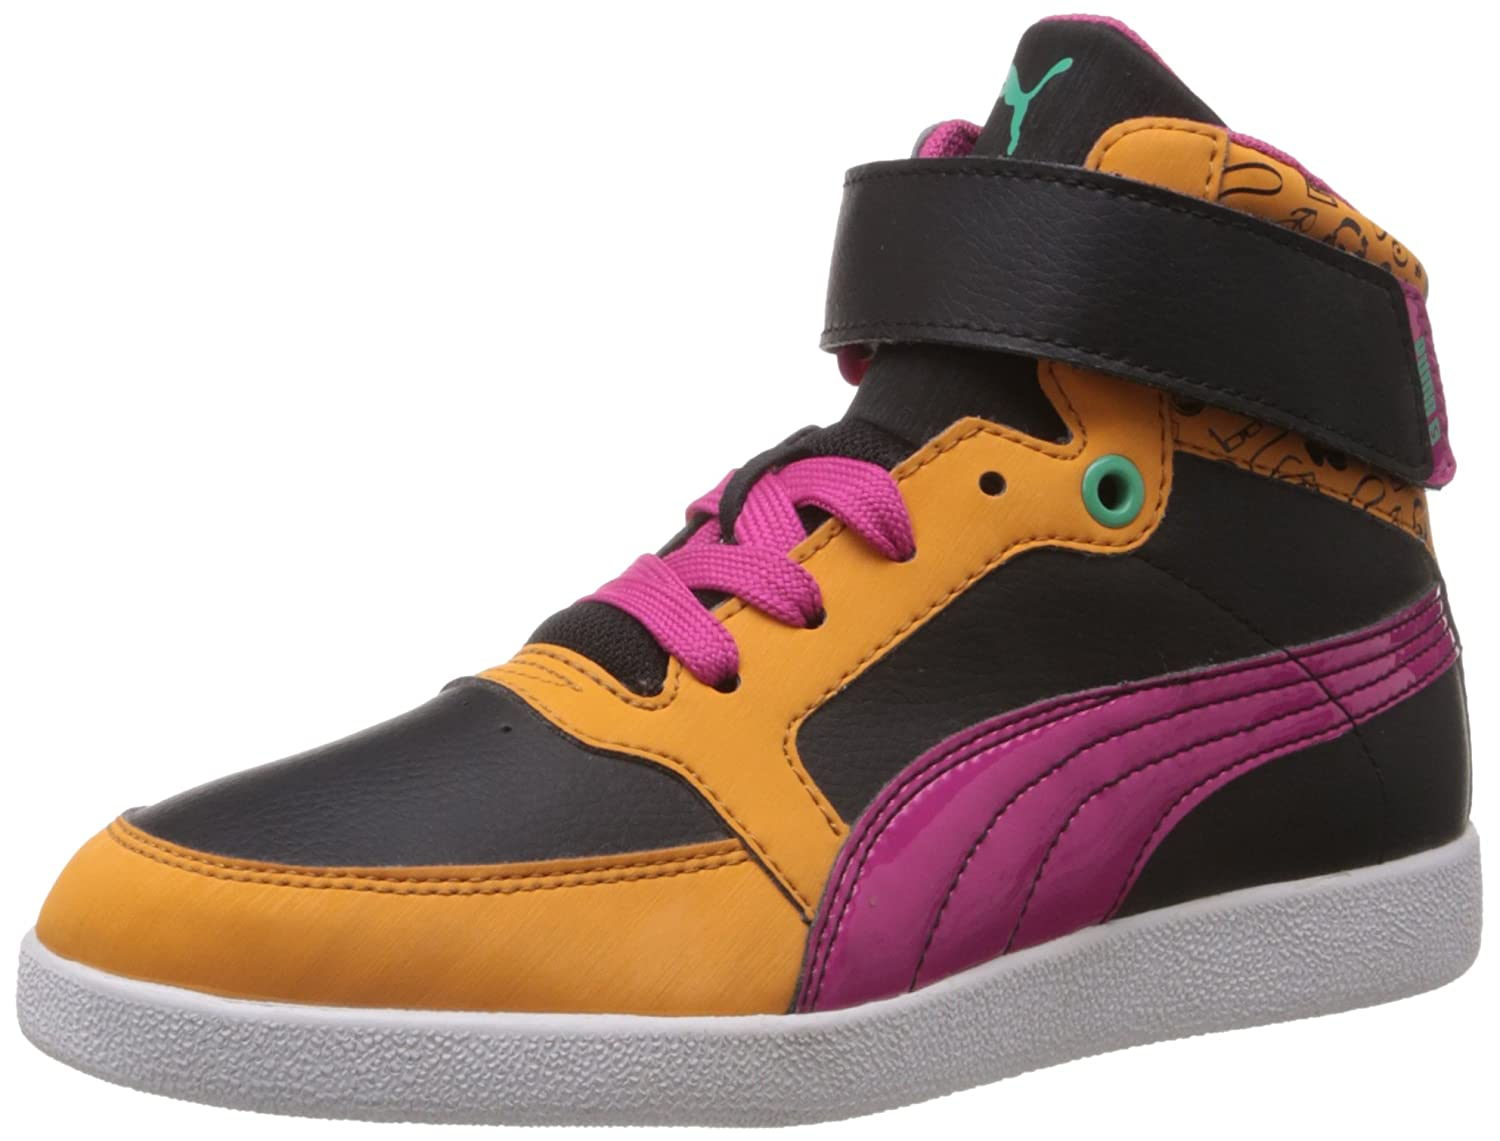 7c8407df1faa Puma Girl s Skylaa Street Jr Black